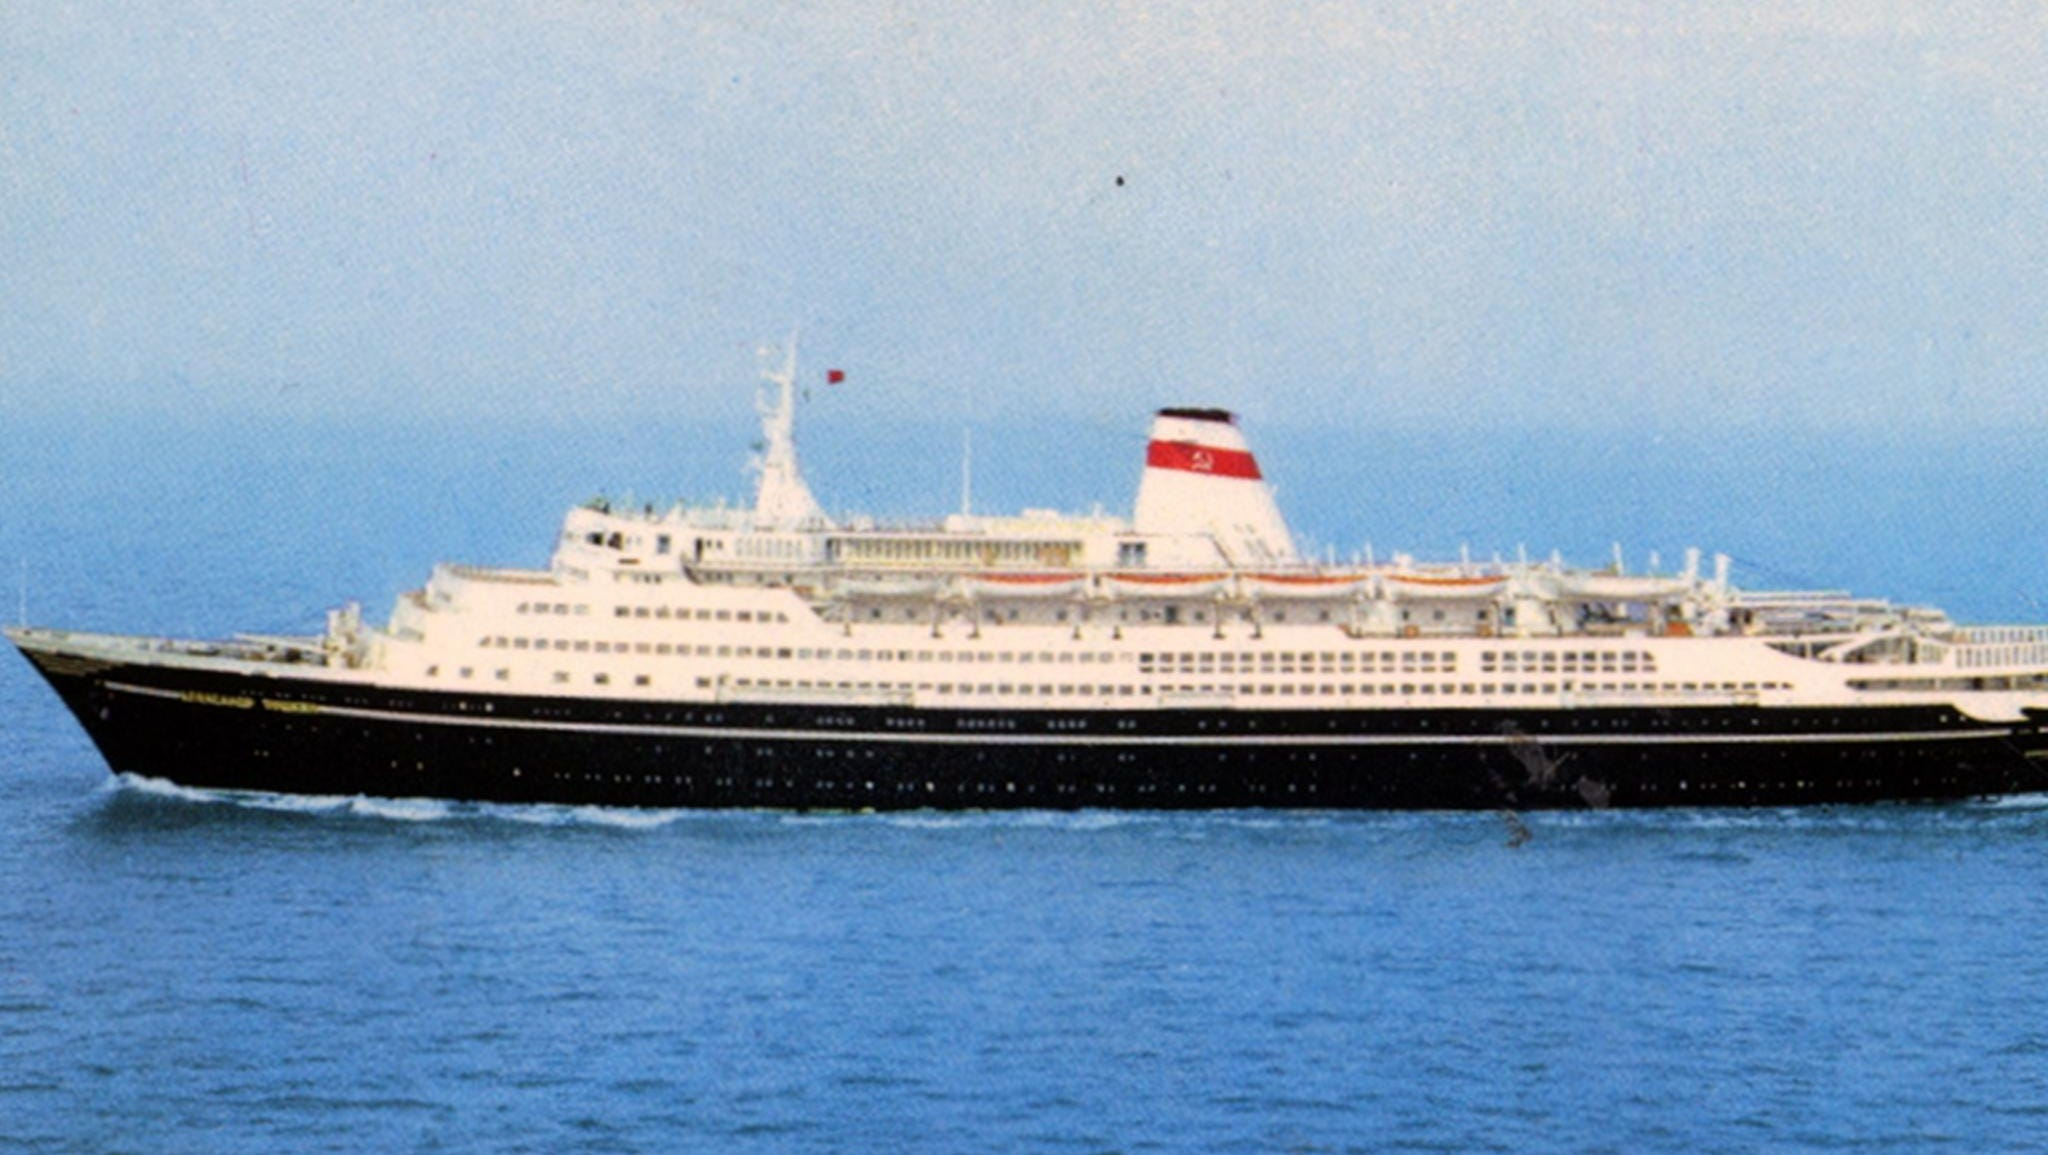 In 1980, the Pushkin was given an extensive refit that expanded the superstructure fore and aft when the ship began to operate in full-time cruise service.